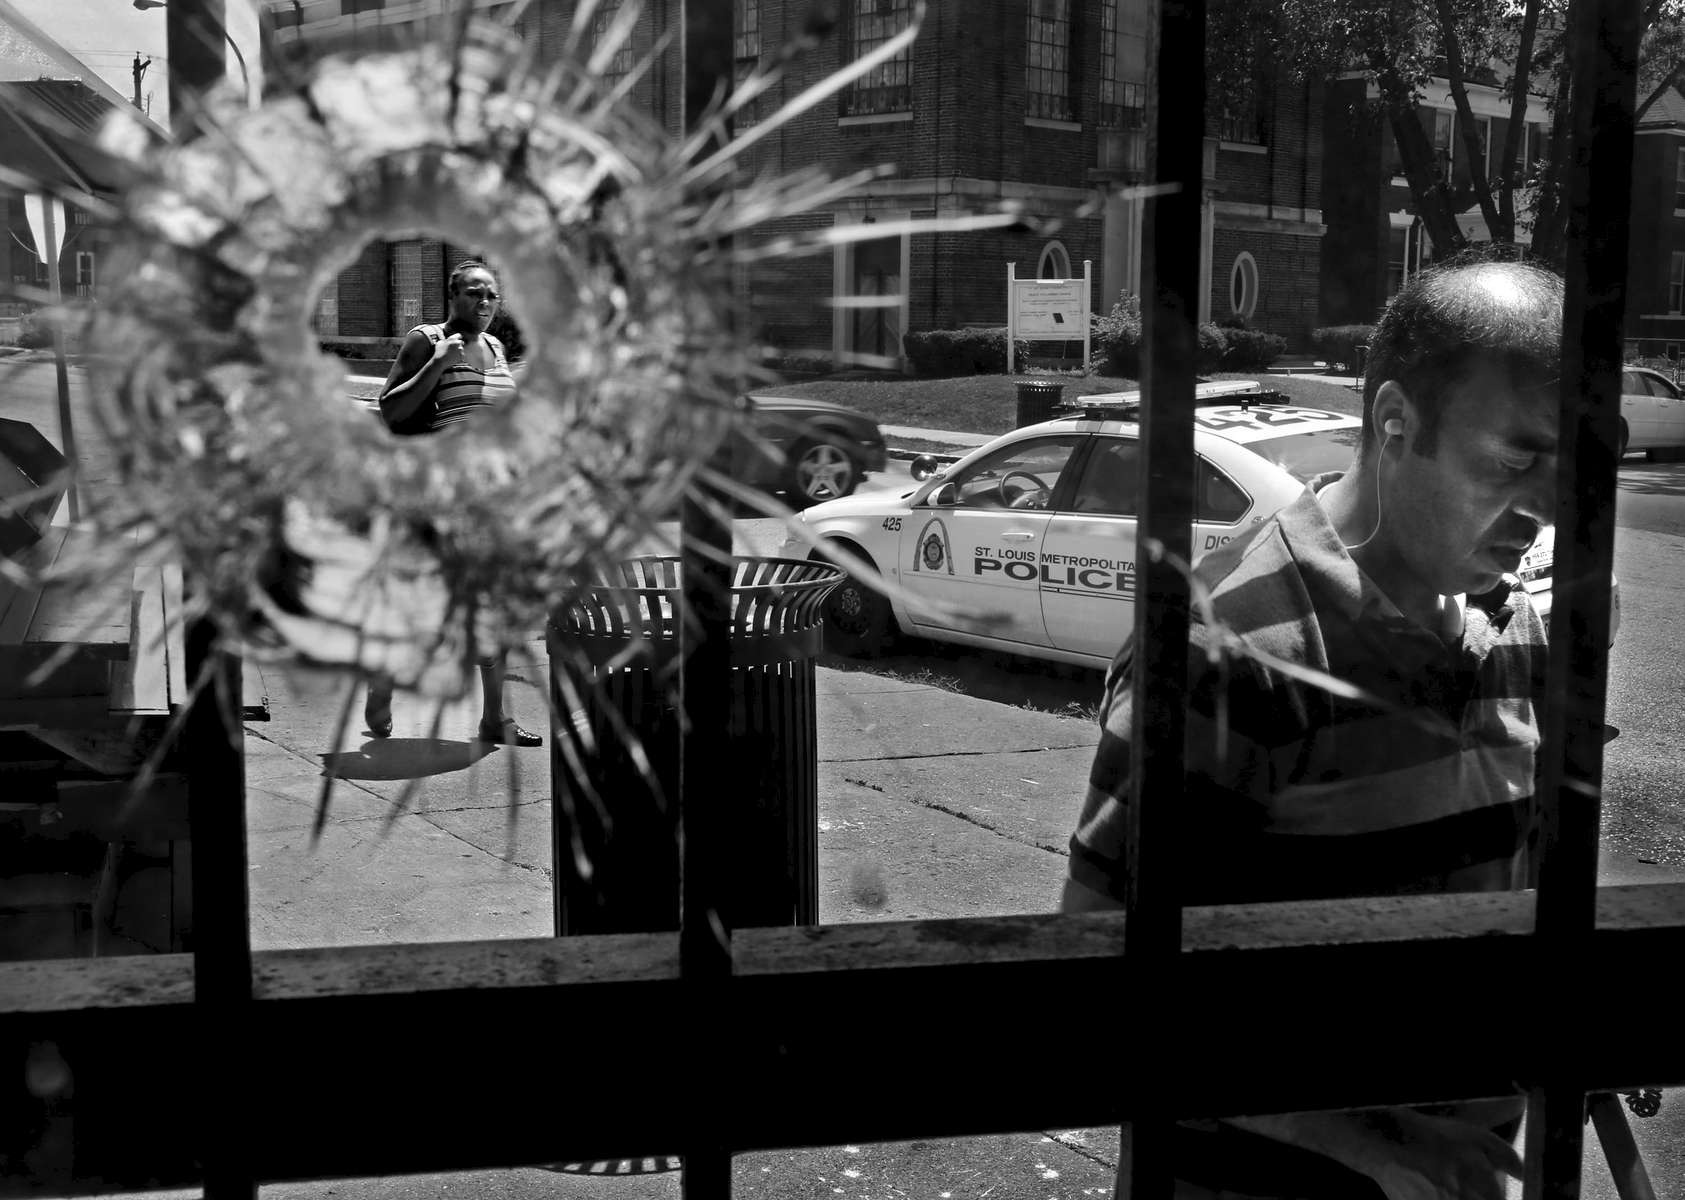 Renee Swink (left) is framed in a bullet hole punched through the front window of Yeatman Market in the 4400 block of Athlone Avenue on Monday, Aug. 3, 2015. The bullet hole is from a shooting that injured three people at about 11:30 a.m. One man suffered a gun shot wound to the leg, another man was hit in his ankle and arm and a third victim sustained a graze wound to his arm. All three victims are expected to survive. The shots were fired from a car at a man who was walking in front of the market. {quote}It's shocking{quote} said Swink whose daughter lives in an apartment above the store. Stray bullets also shattered the store's front glass doors, damaged some wood work and a soda machine. Also pictured is Mustafa Hamed (right) who was helping sweep up the broken glass.Photo By David Carson, dcarson@post-dispatch.com